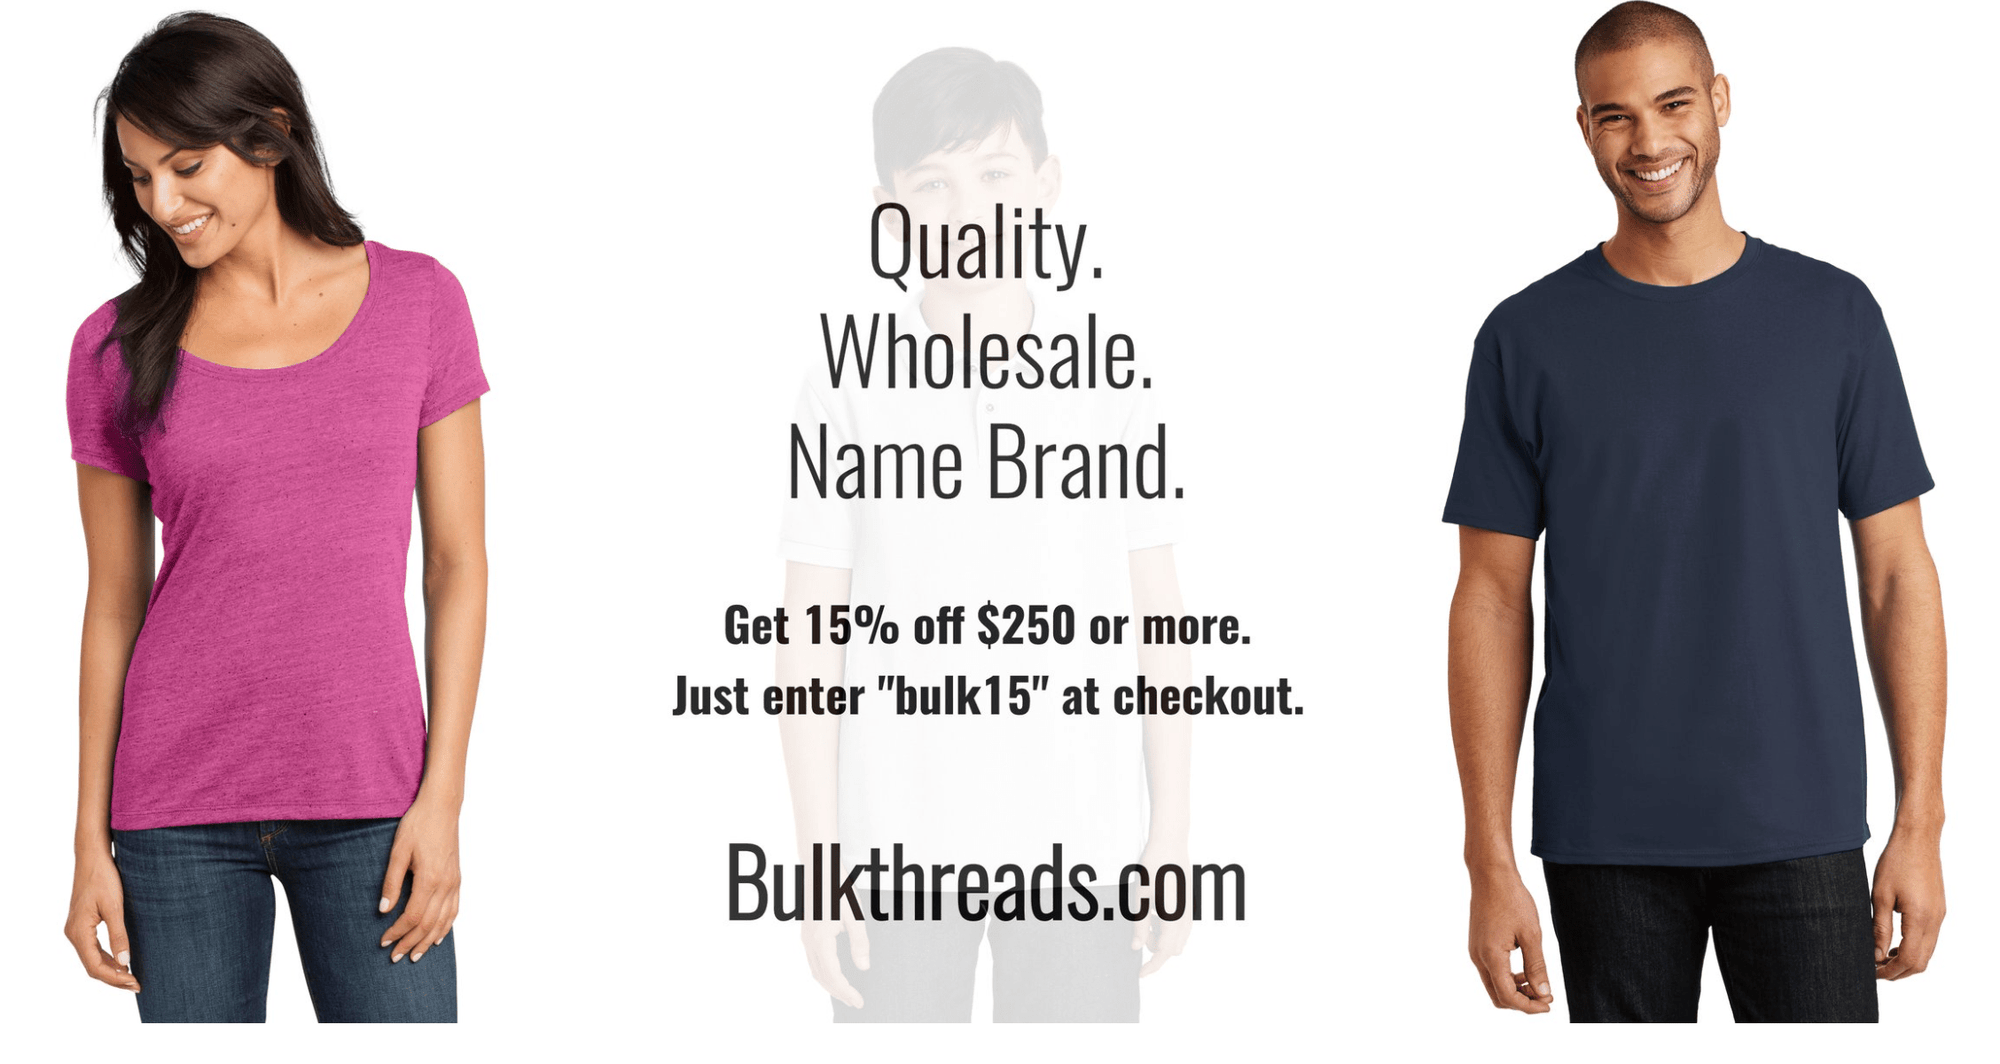 Blank wholesale t-shirts. T-Shirts online. Cheap tees. t-shirts for businesses. T-shirts for printing. Wholesale blank tees.